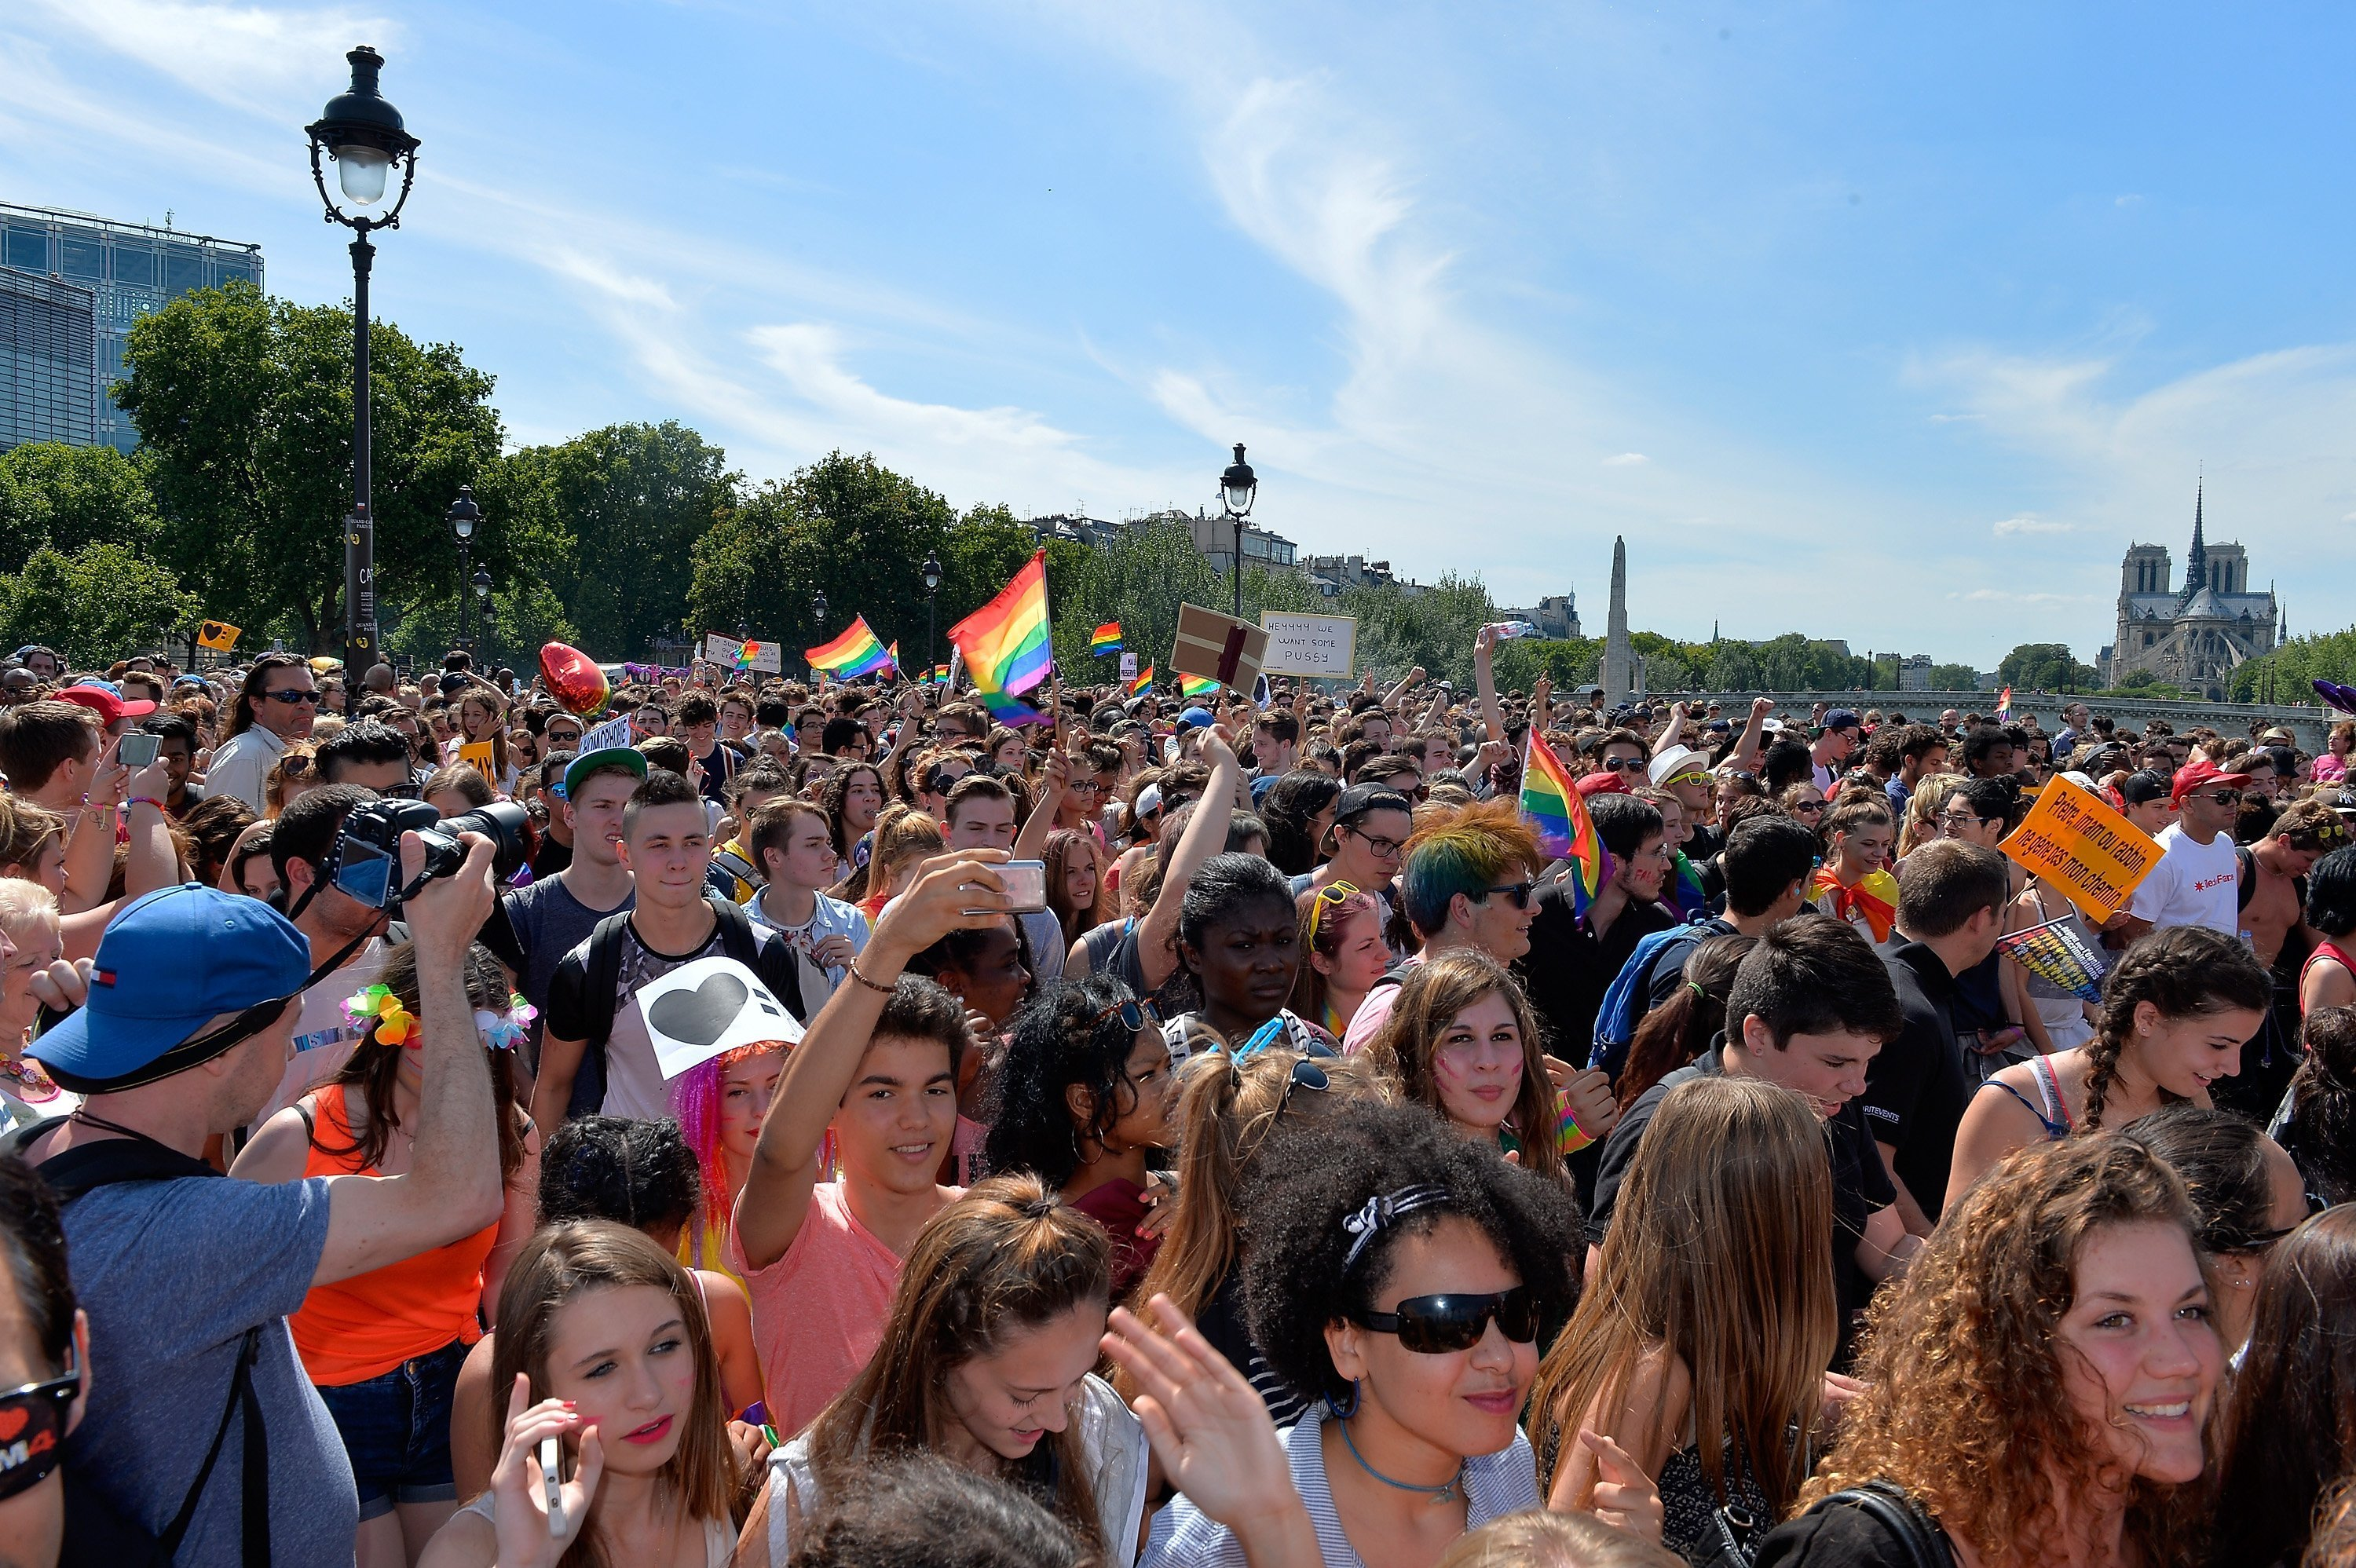 Thousands gathered to support gay rights at the Gay Pride Parade in Paris | Photo: Getty Images